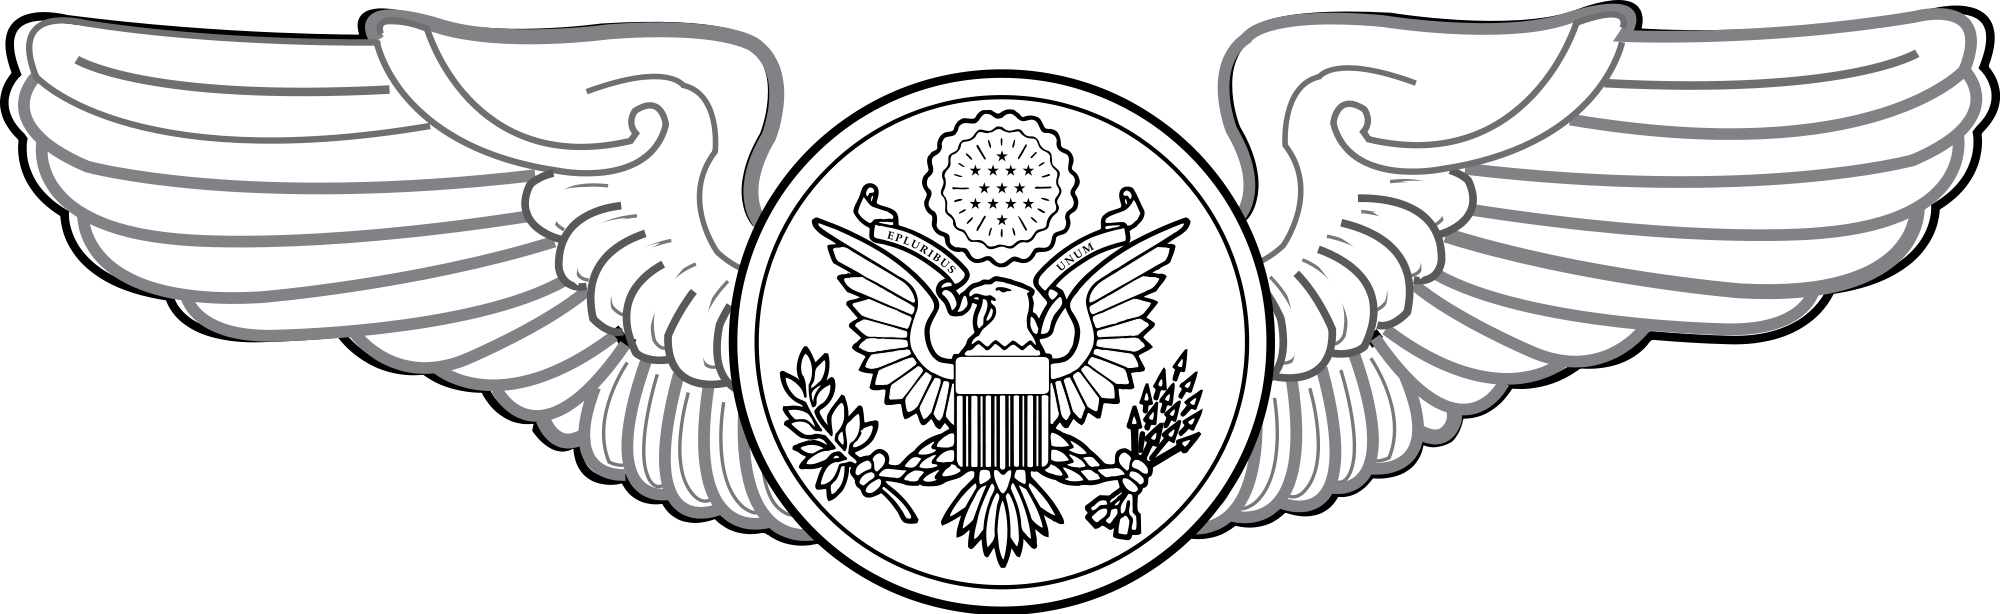 Wing badge png. File united states air